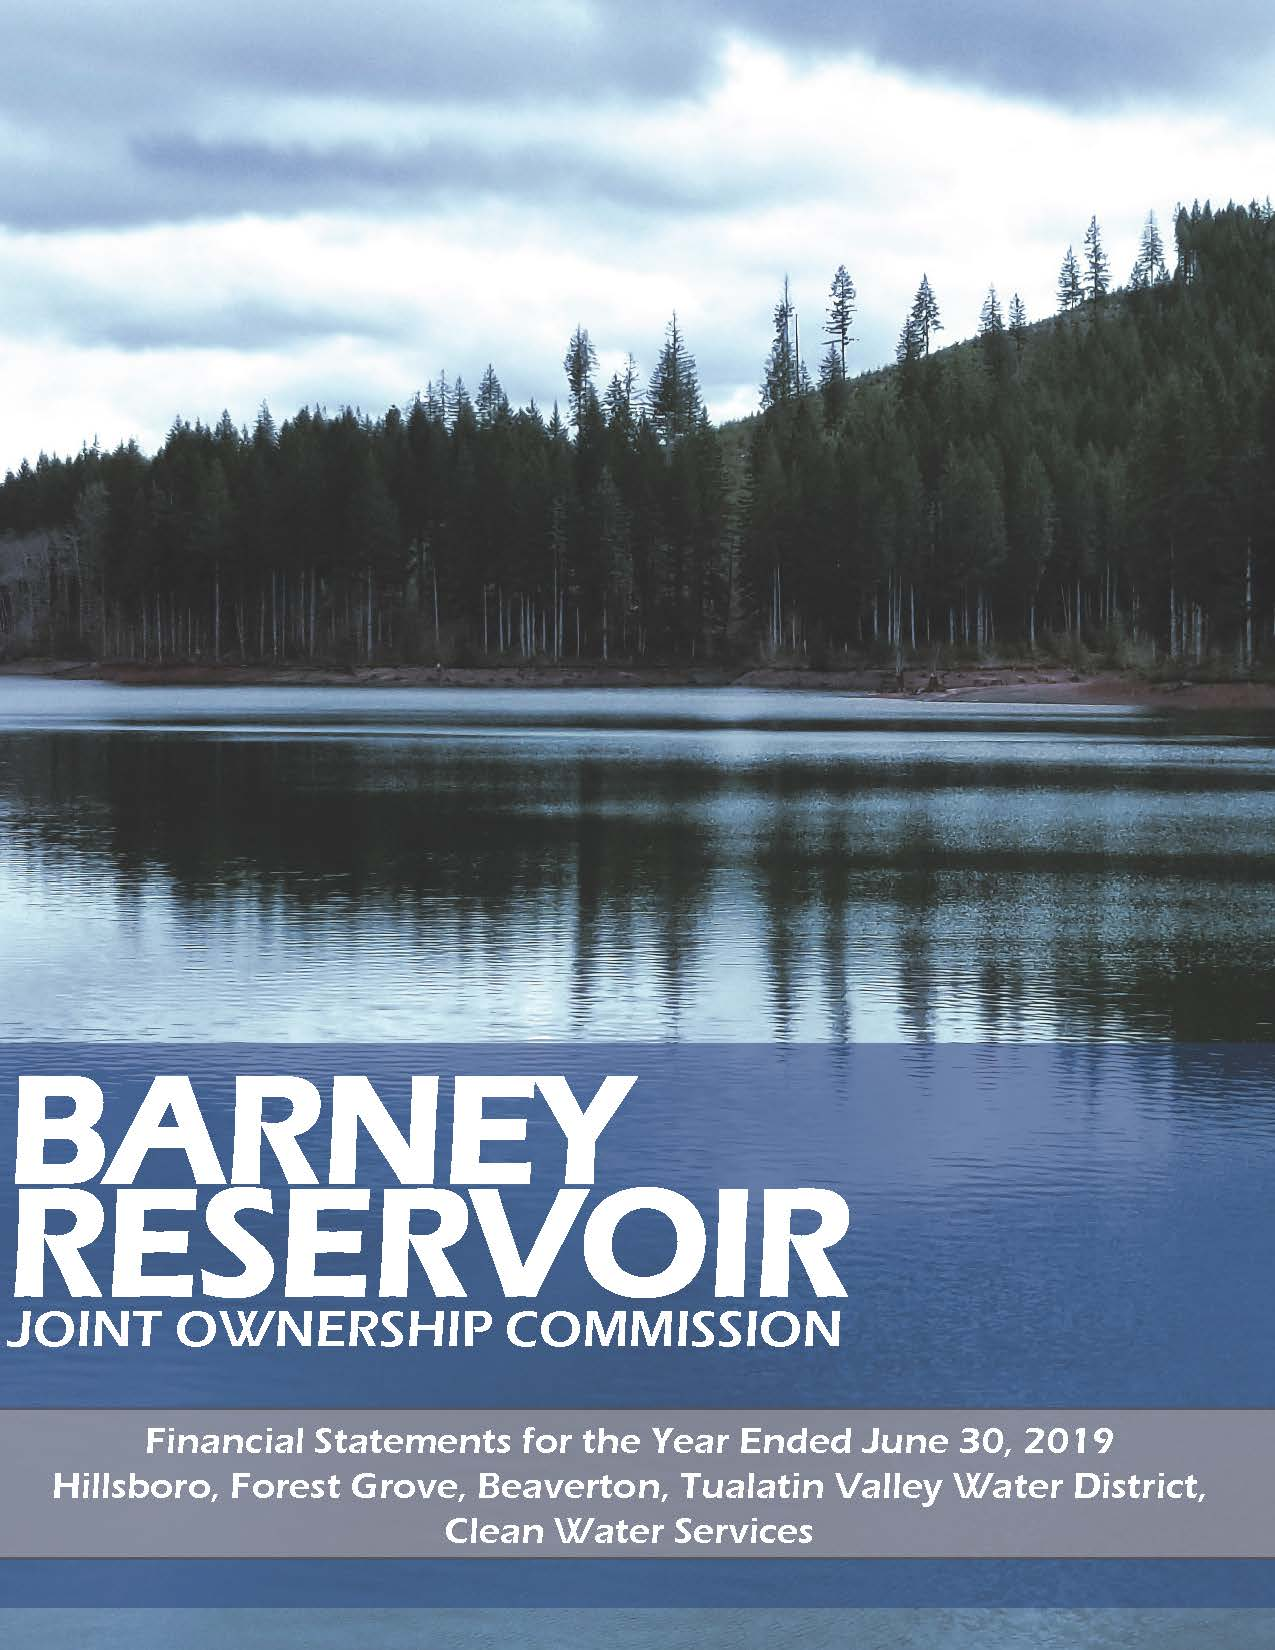 Barney Cover FY 2018-19